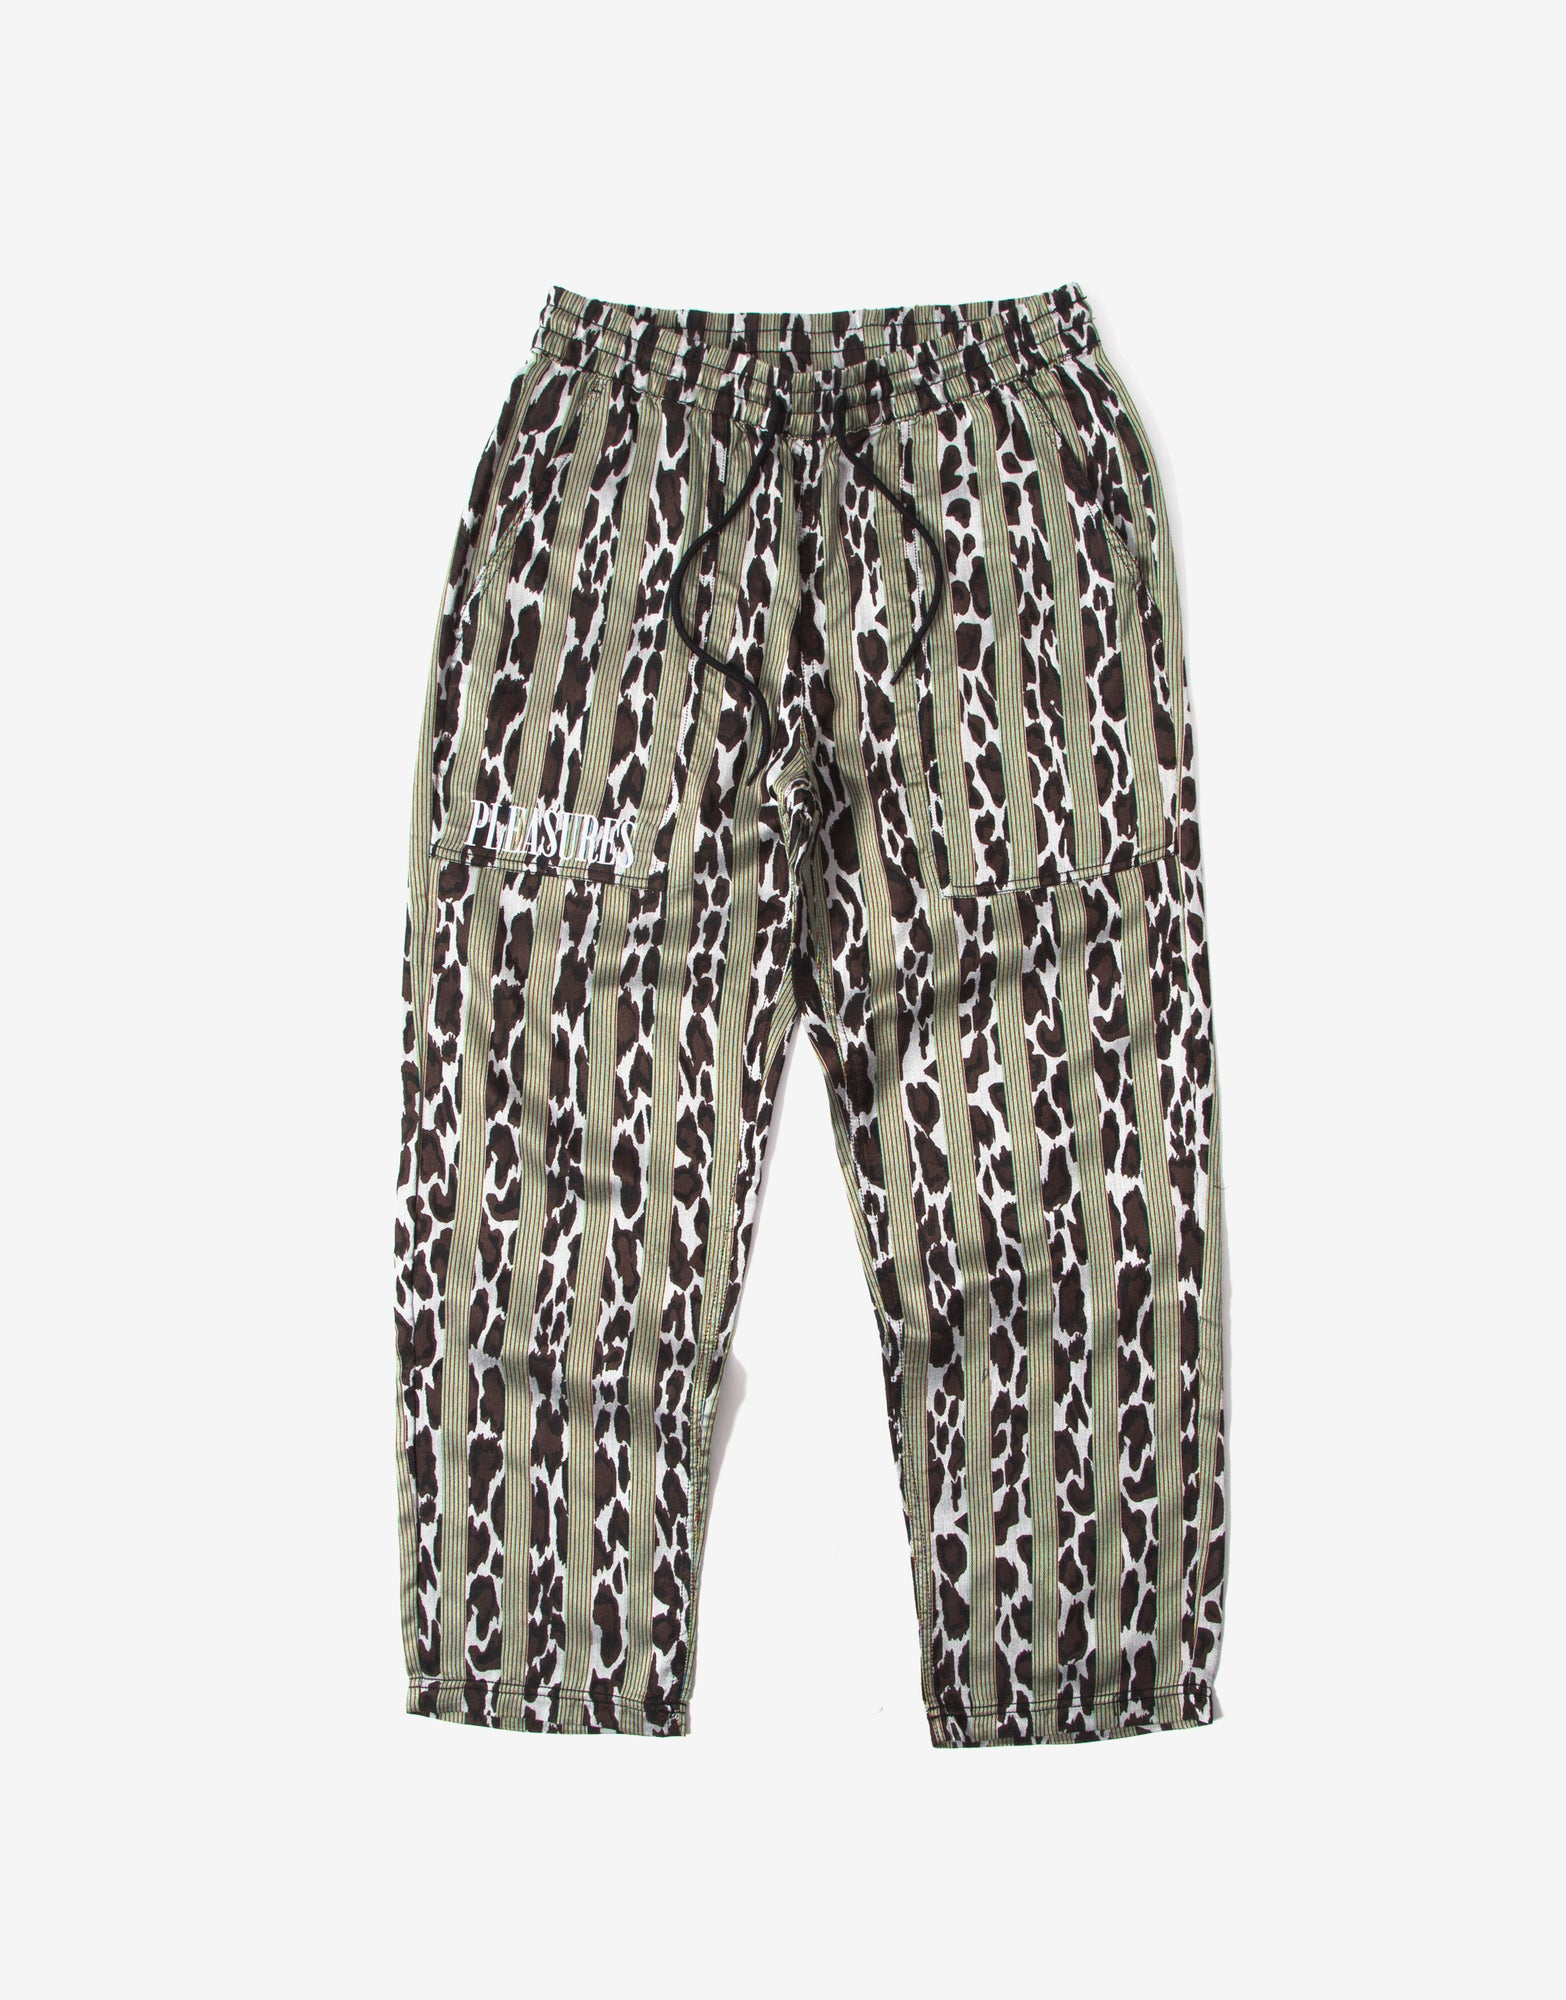 Pleasures Bloom Striped Beach Pant - Black